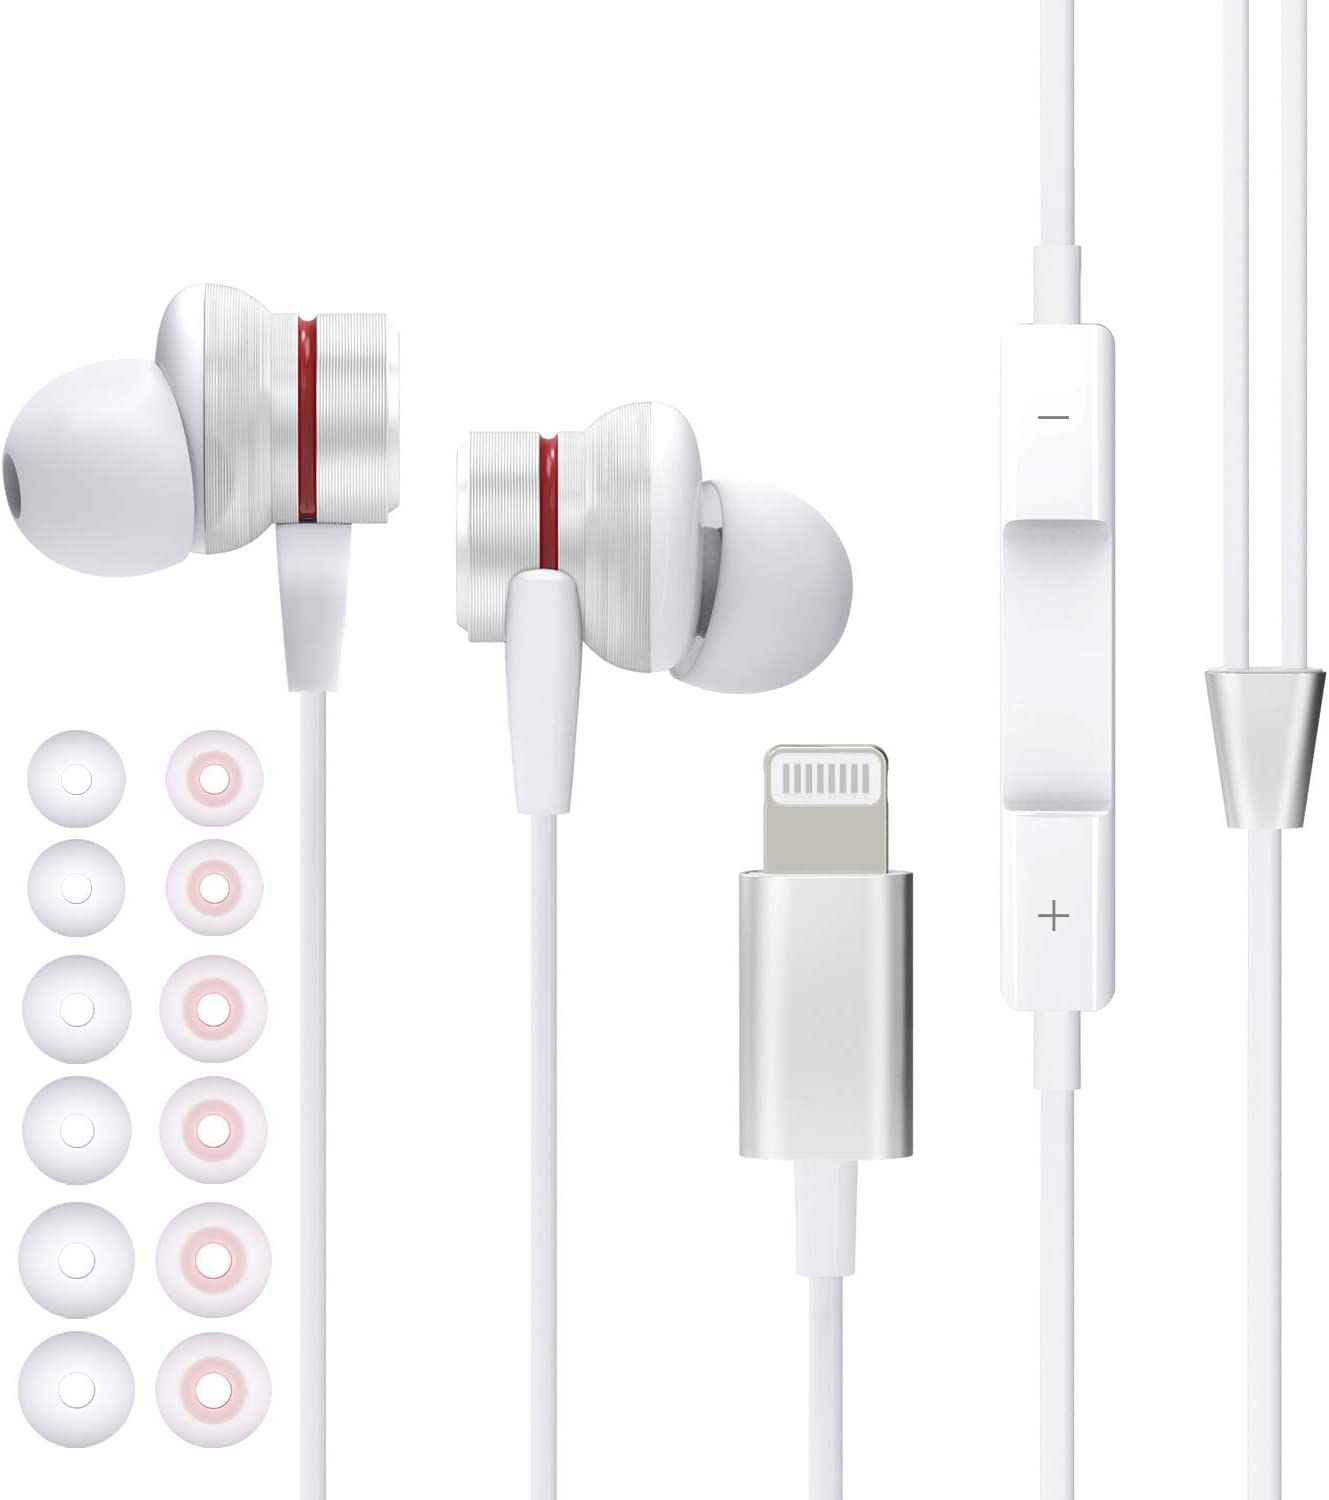 MFi Certified Lightning Headphones Wired Earbuds for iPhone with Microphone and Volume Control Inear Earphones Noise Isolation Compatible iPhone 12/12 Pro/11/11 Pro, X/XS Max/XR, 7/8/Plus